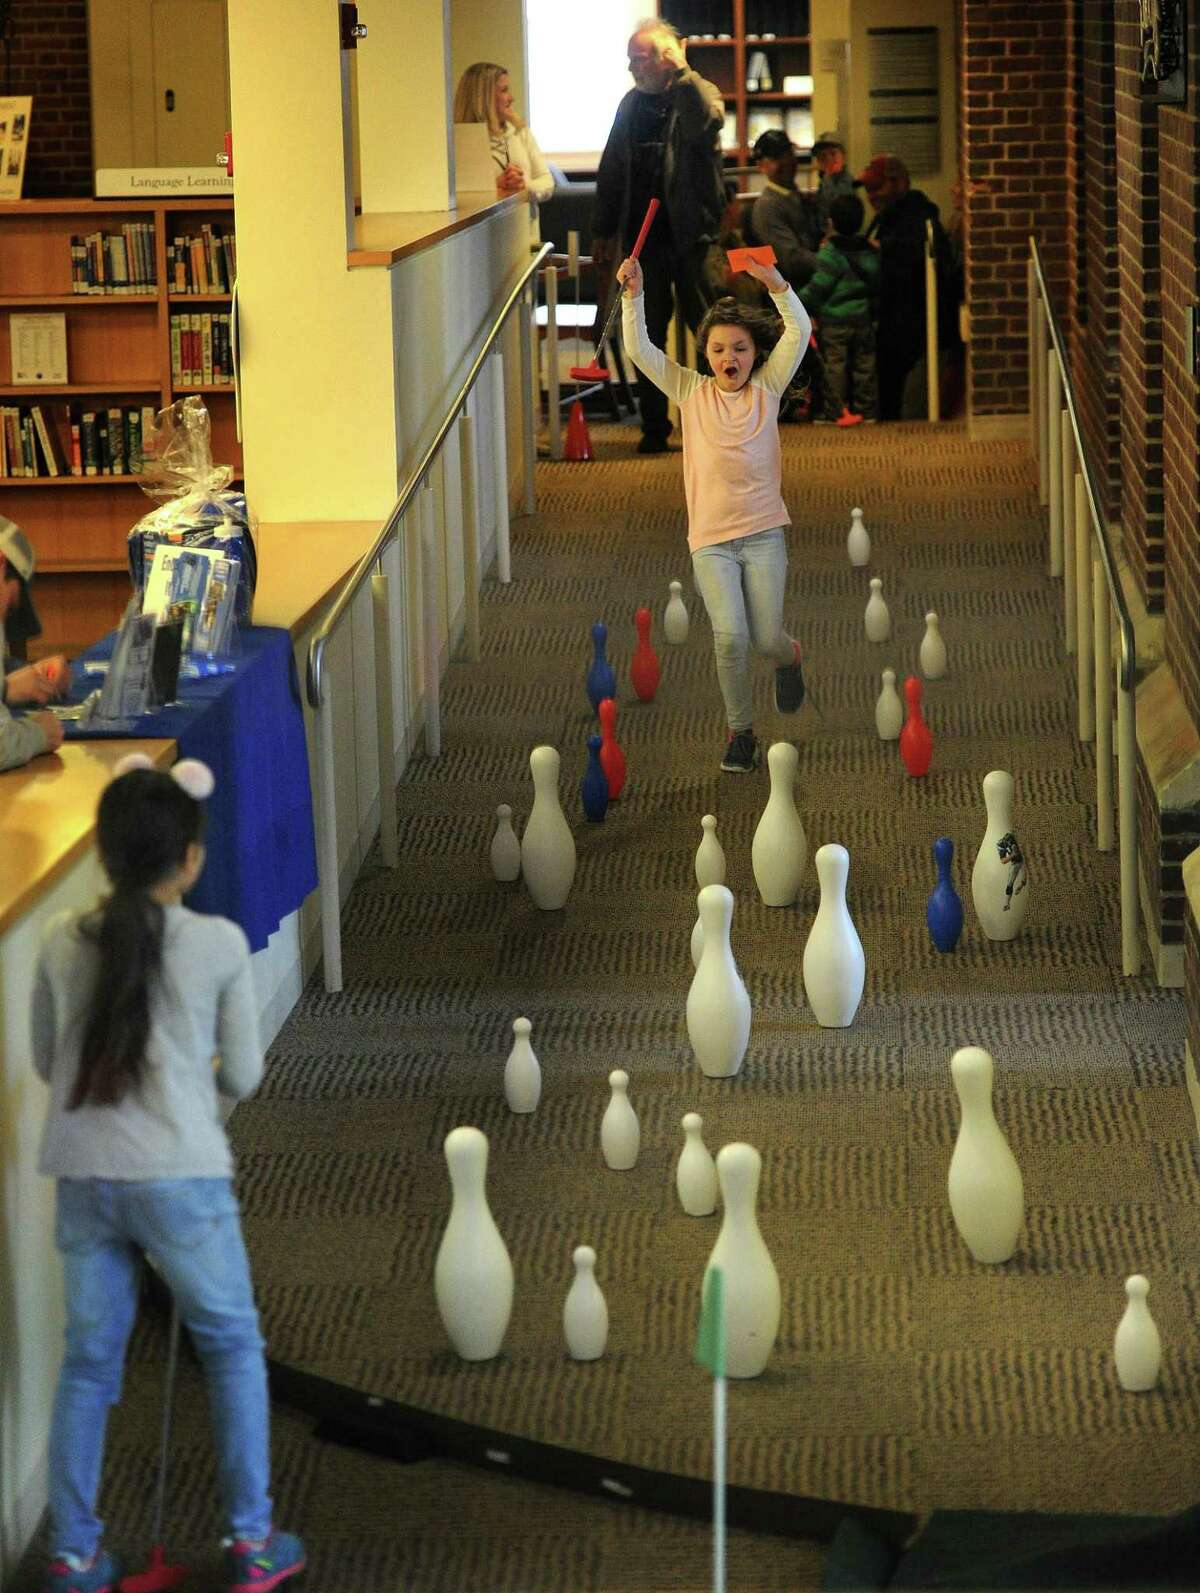 Friends Amanda Vielmetti and Ava Bossio, both 8, of Fairfield, have fun playing the 9th hole at the Friends of the Library Mini-Golf fundraiser at the Fairfield Public Library in Fairfield, Conn. on Sunday, March 25, 2018. Holes were laid out through the stacks and down stairways and ramps throughout the building.